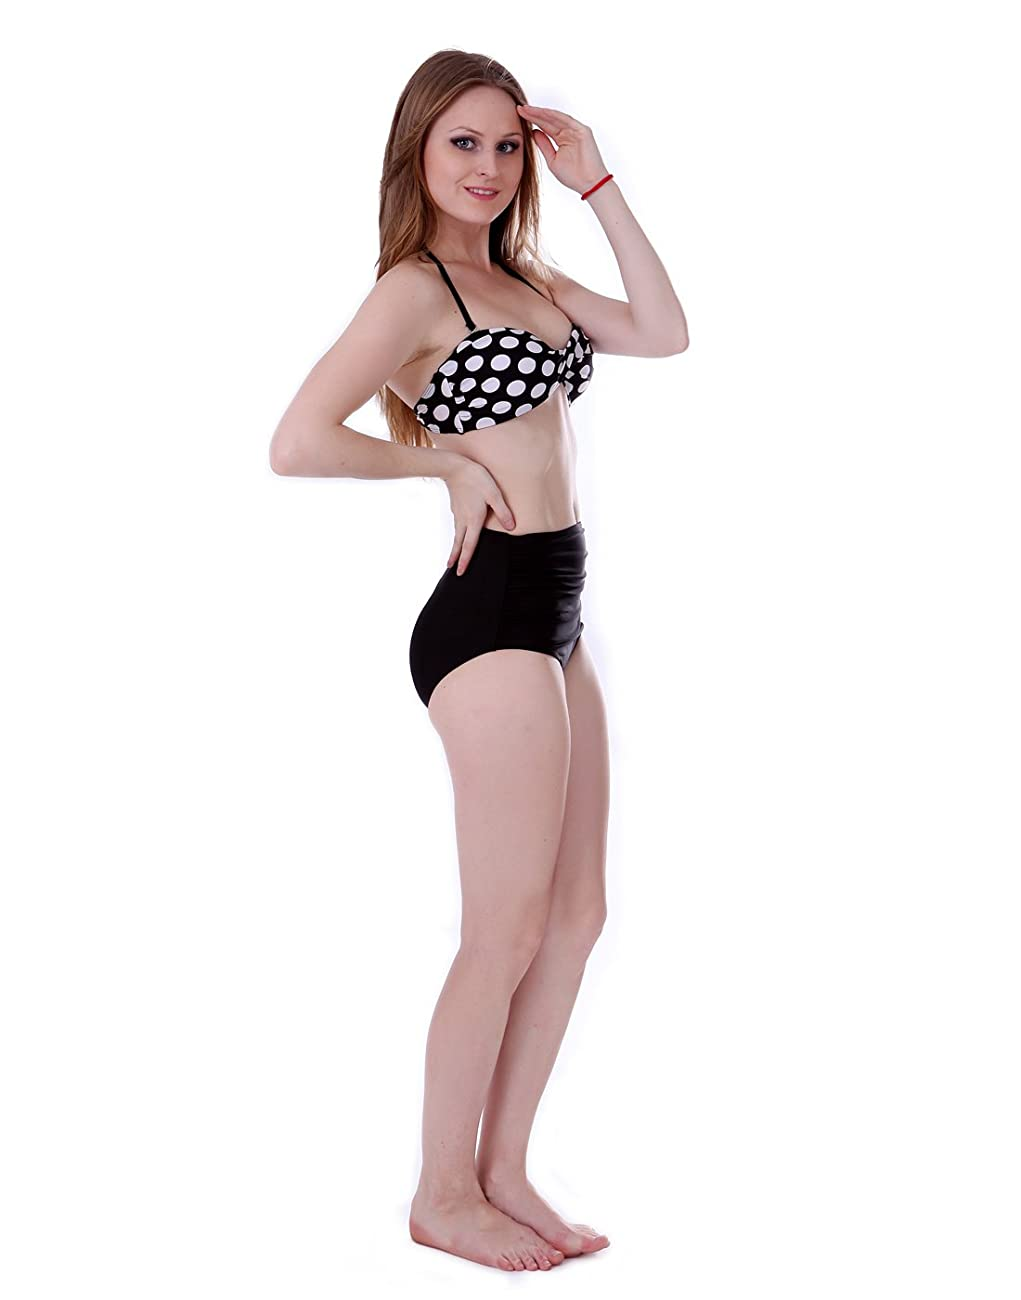 HDE Women Vintage 50s Pinup Girl Rockabilly High Waist Retro Bikini Swimsuit Set 5